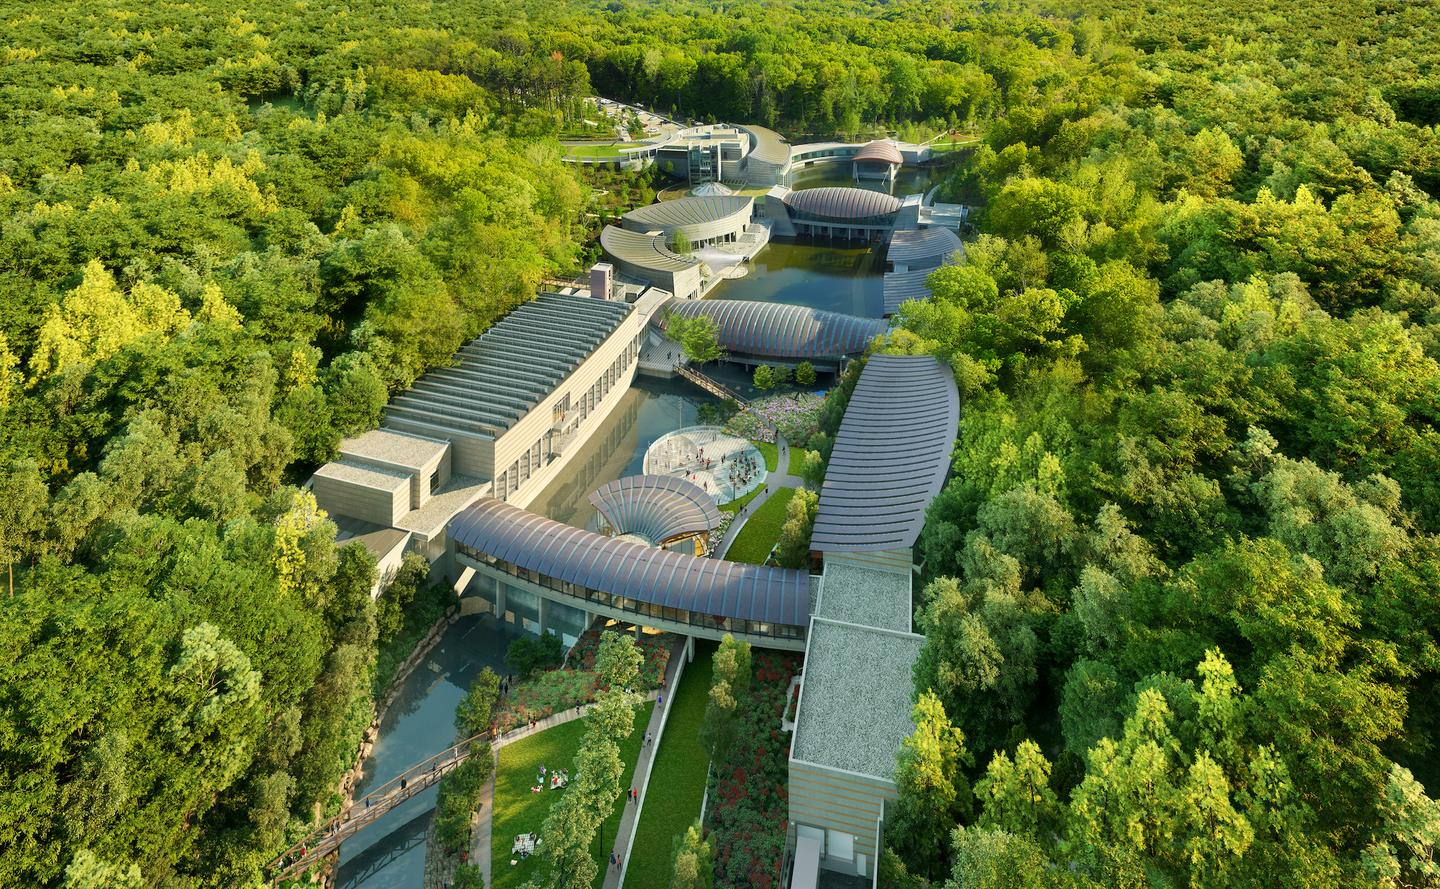 The Crystal Bridges Museum of American Art is nestled within 120 acres (48.5 hectares) of rolling landscape in Arkansas